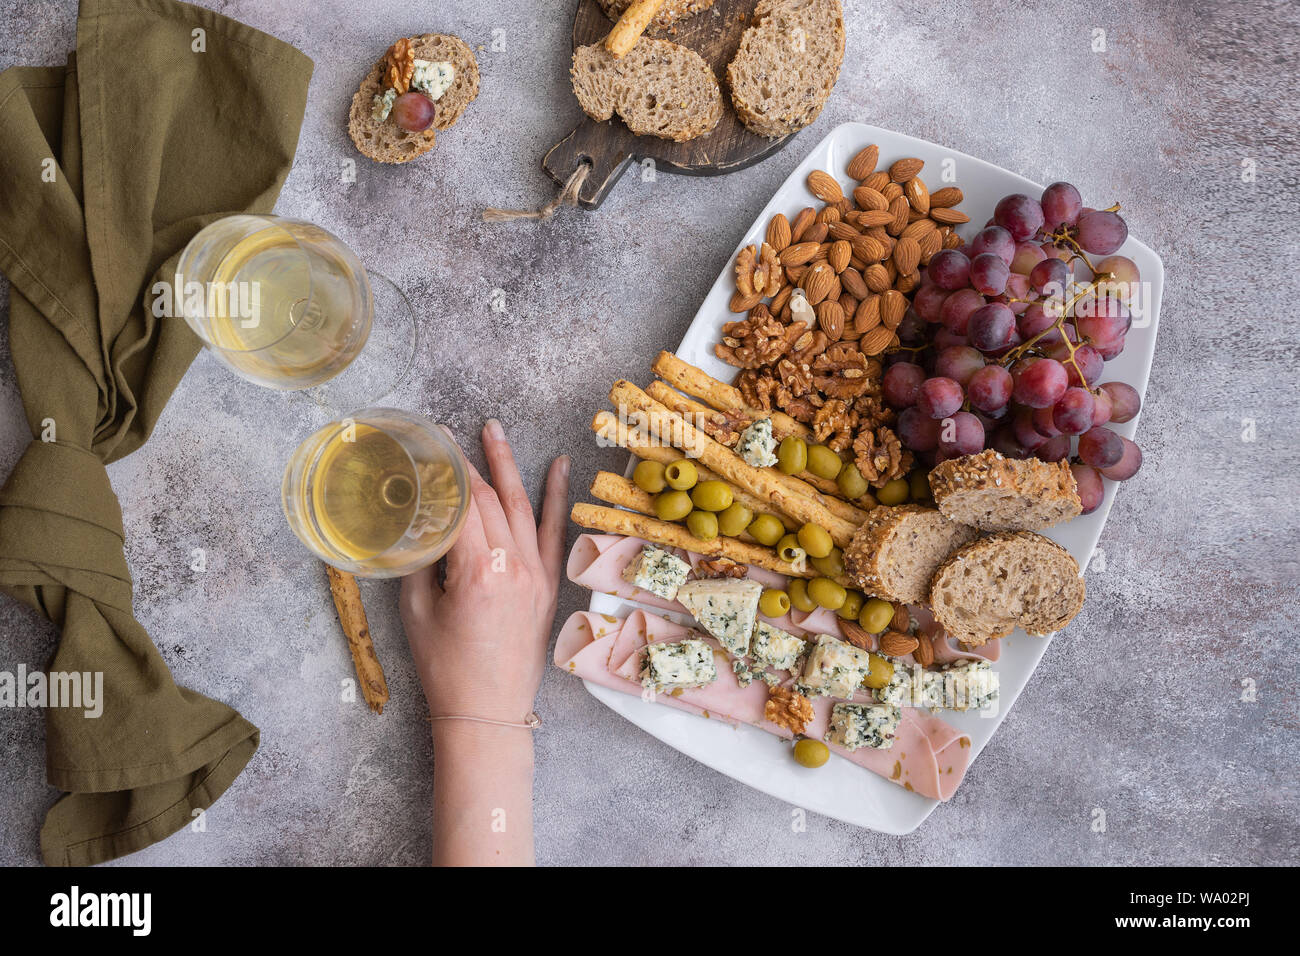 Two glasses of white wine and plate with different snacks.Female hand holding glass of wine .Tasting party background. Top view. Stock Photo